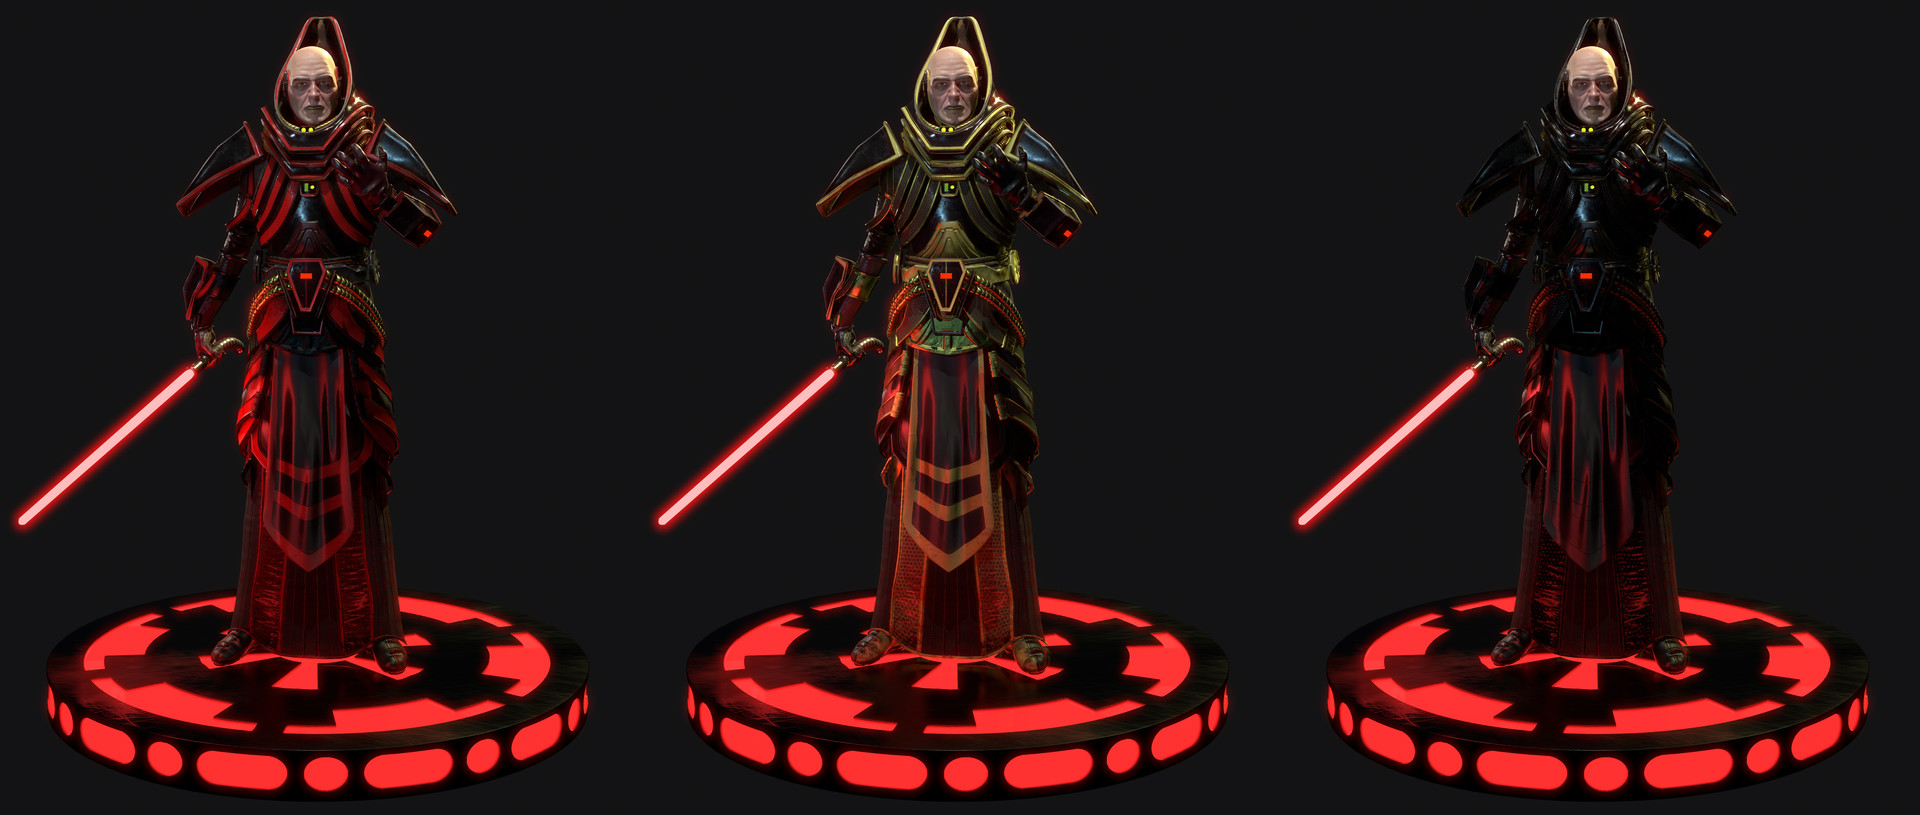 The armor was about 95% textured in Substance Designer, and the rest was handpainted in Subs Painter. The parameters in SD were exposed to allow an easy creation of a wide variety of armor skins.